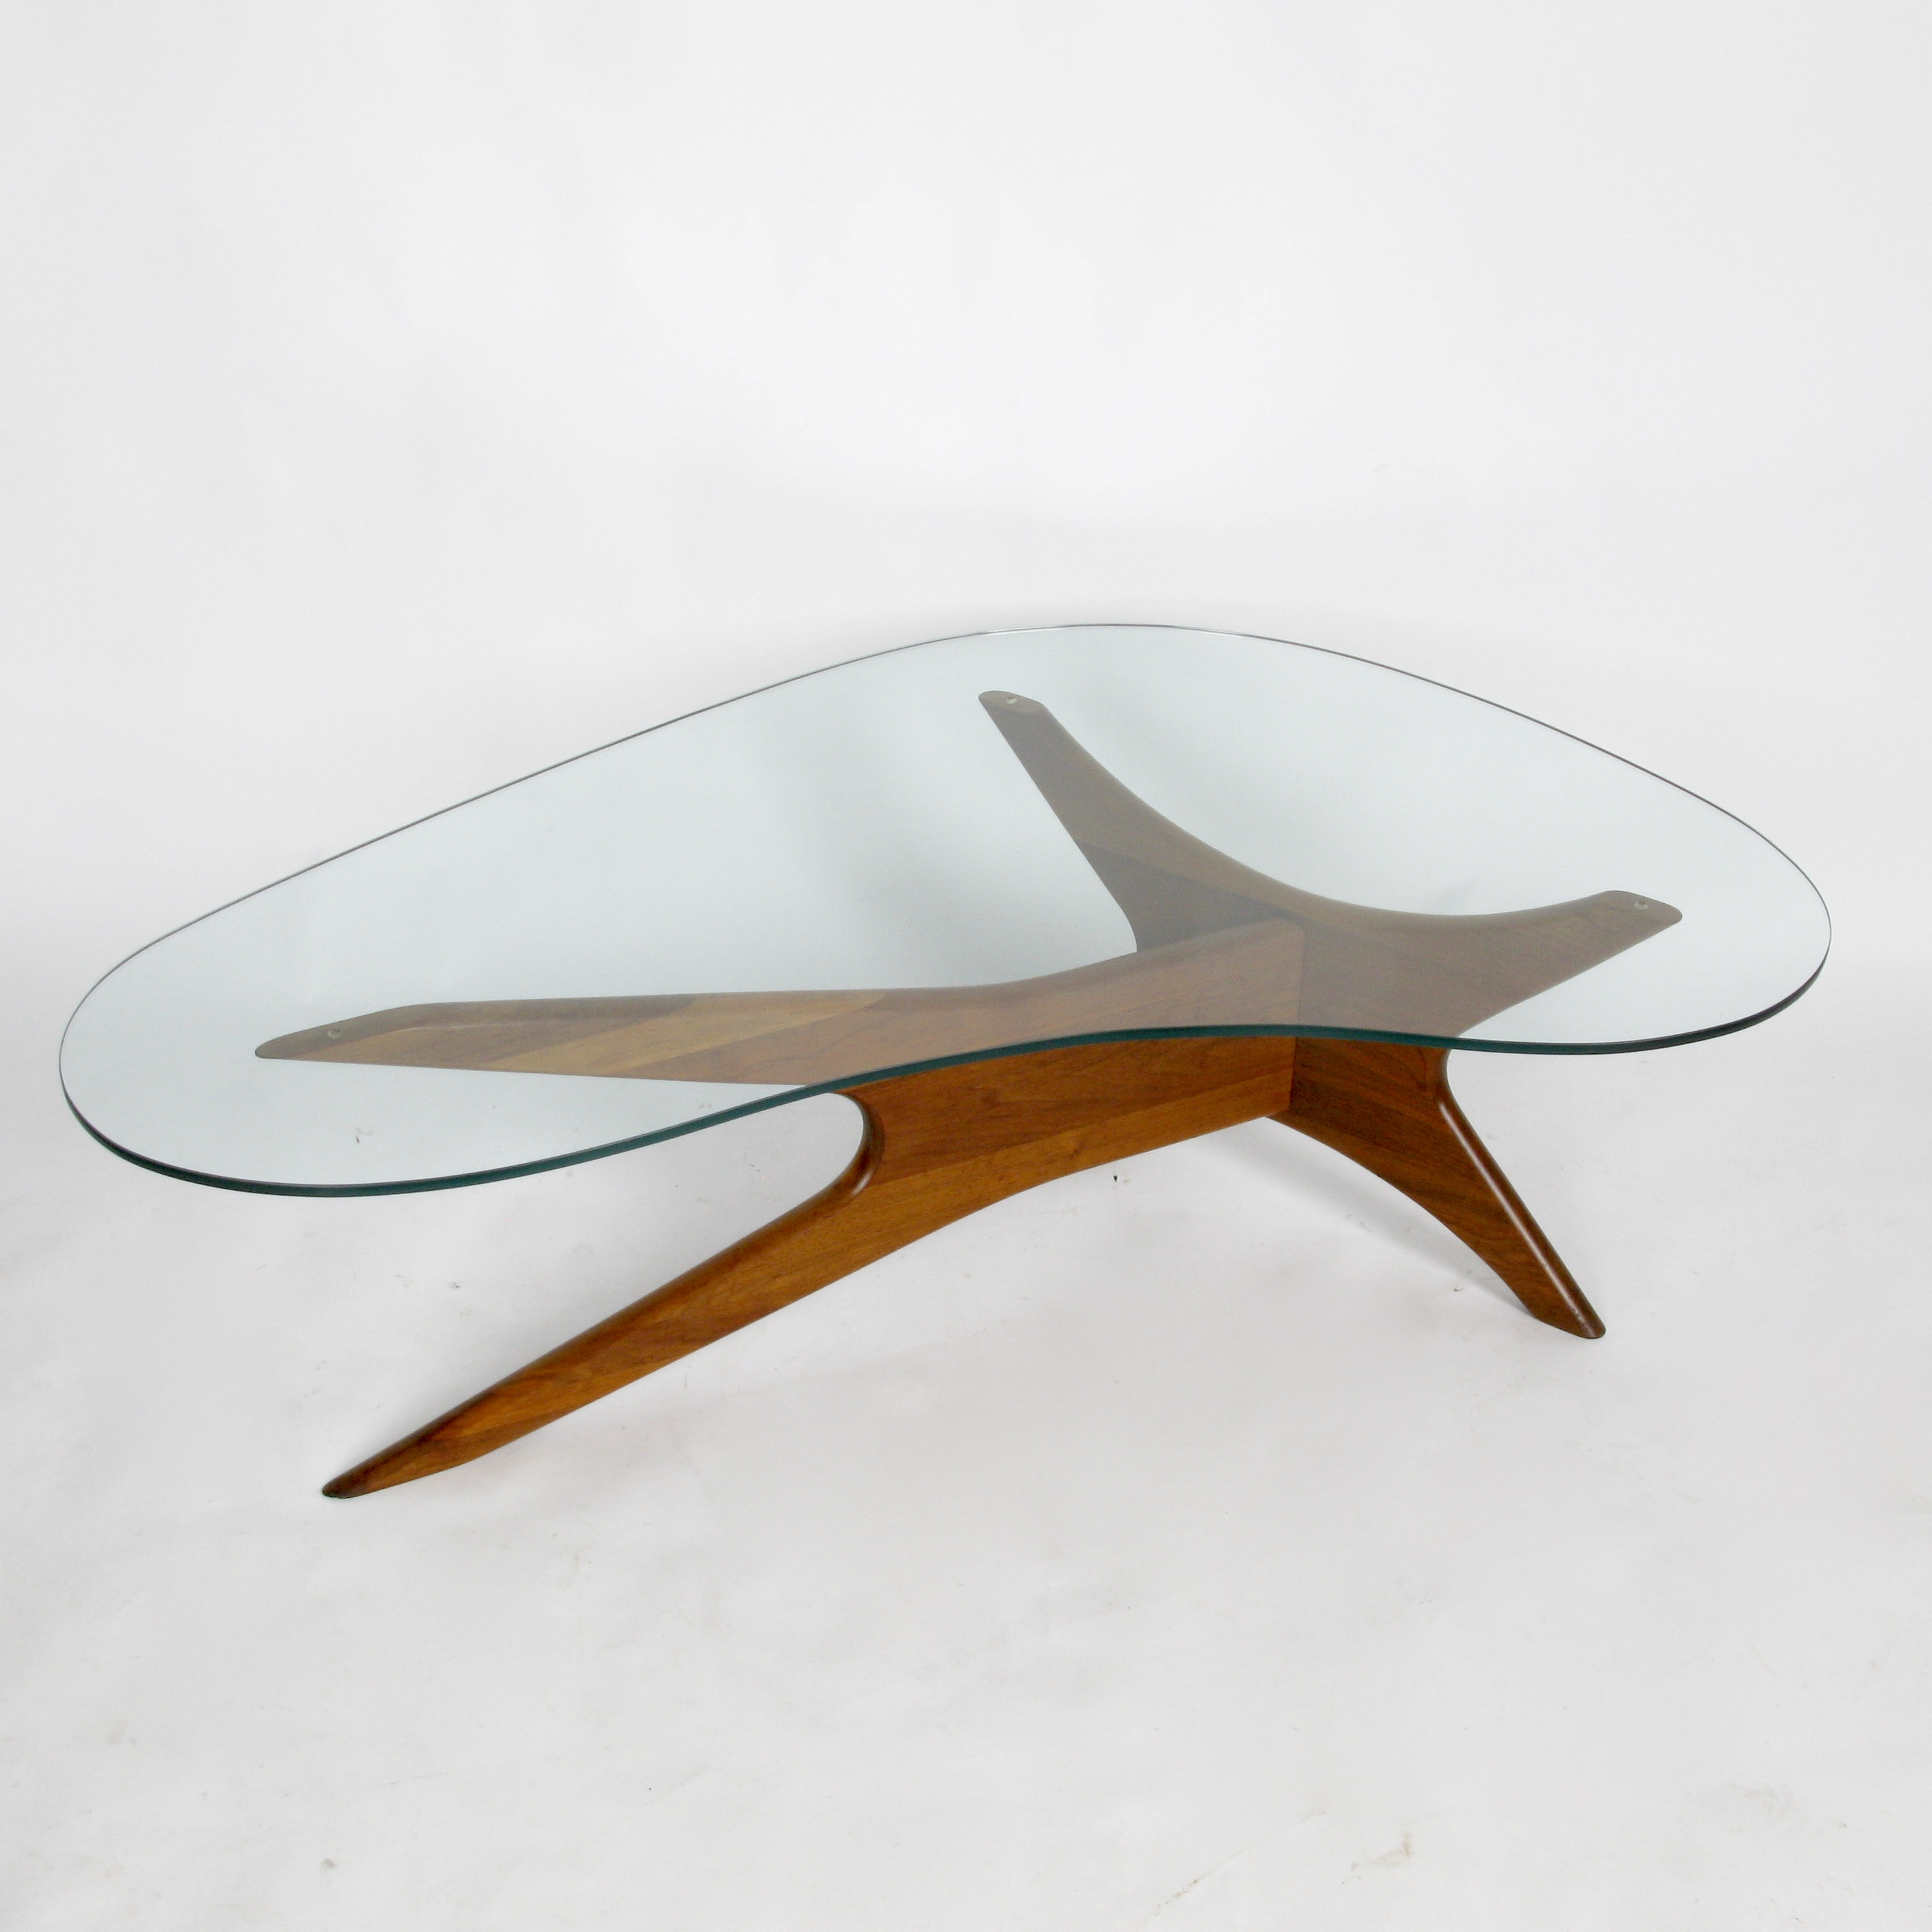 Terrific Adrian Pearsall Boomerang Coffee Table Evergreenethics Interior Chair Design Evergreenethicsorg